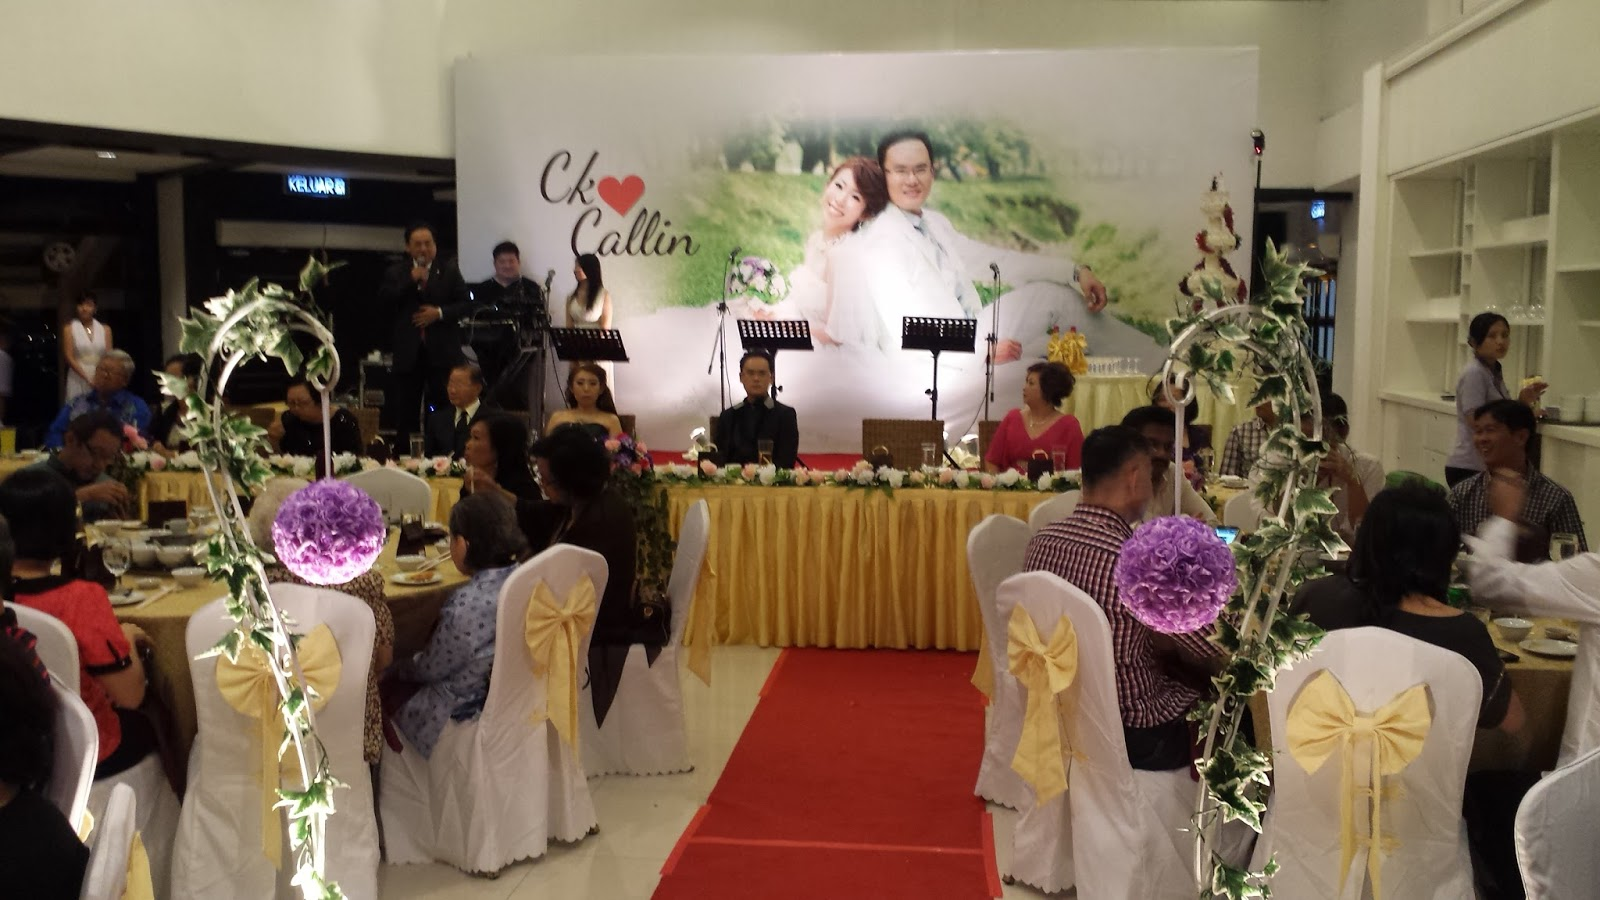 Wedding dinner penang golf club red occasions wedding dinner penang golf club junglespirit Choice Image